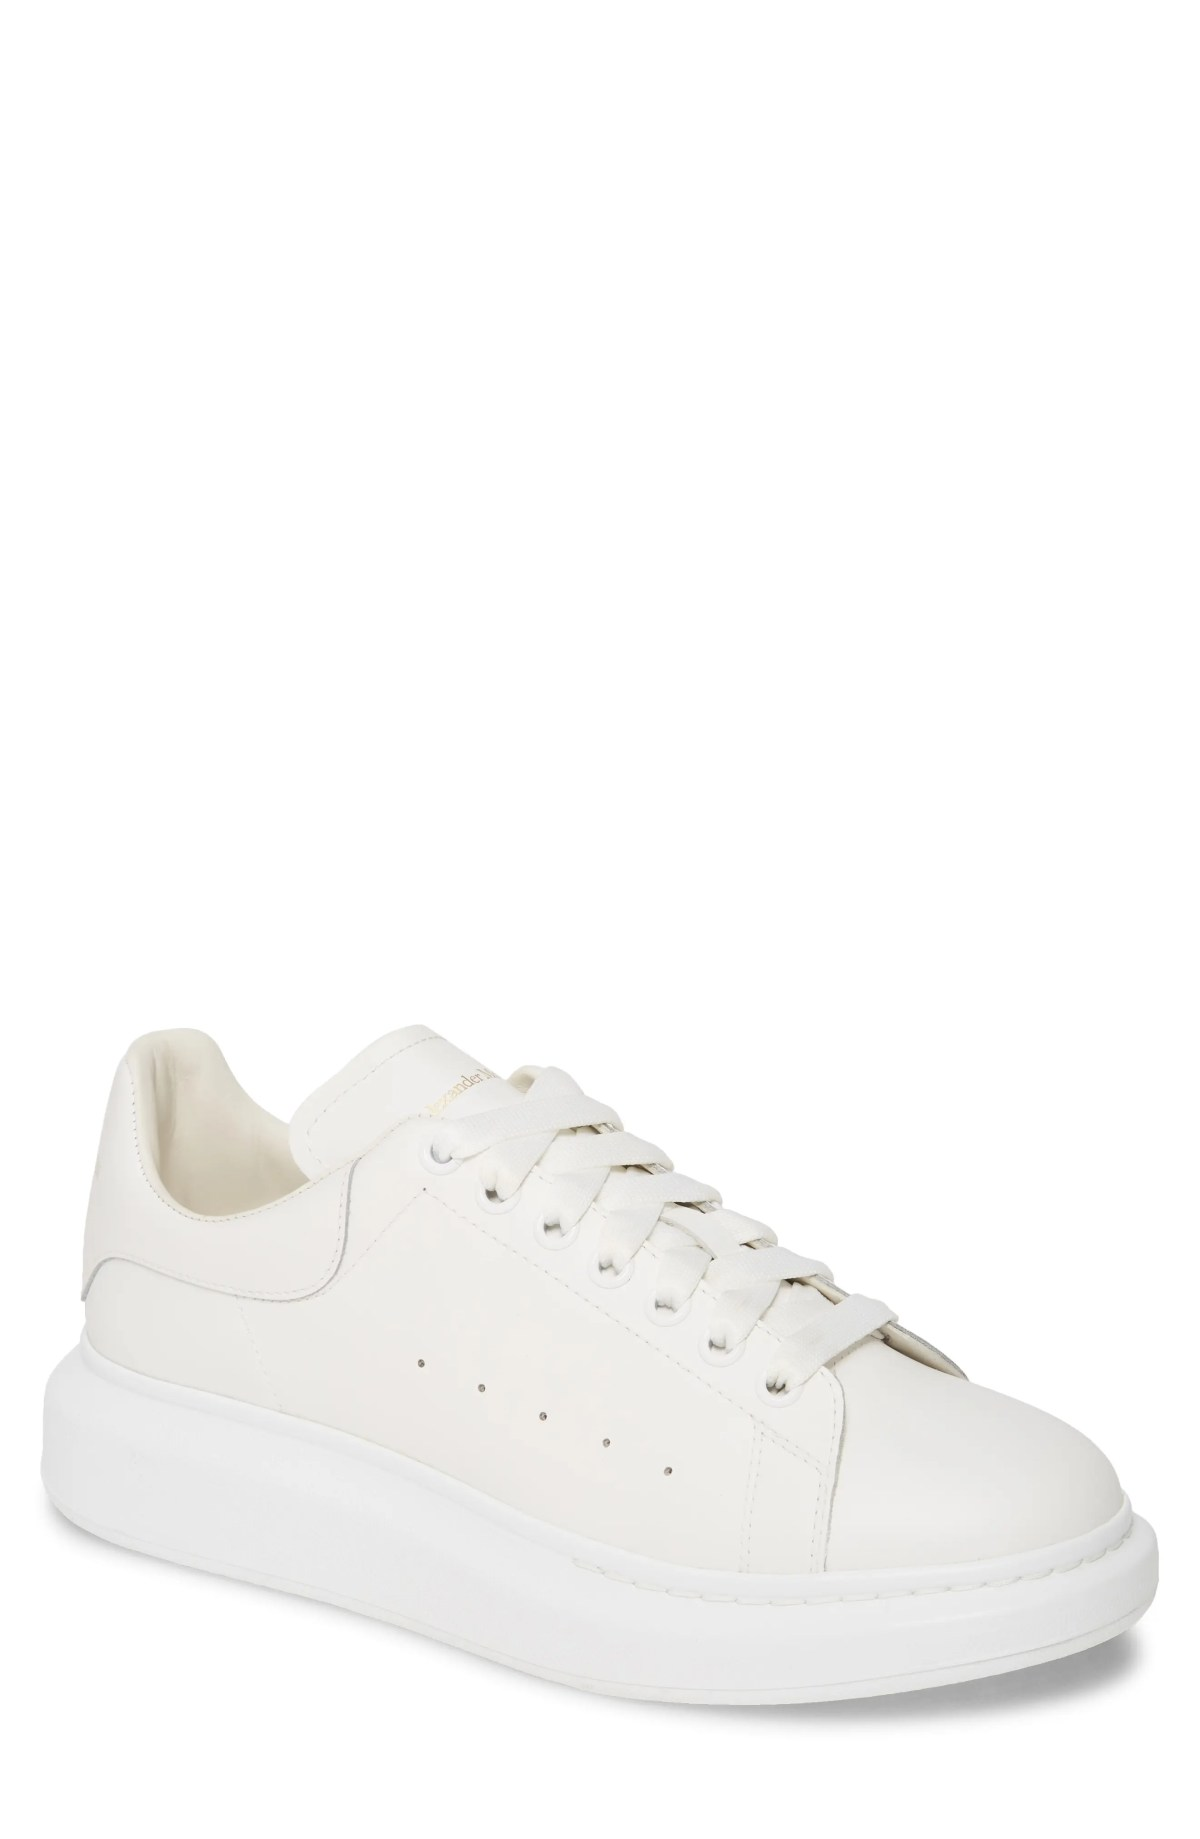 ALEXANDER MCQUEEN Oversize Low Top Sneaker, Main, color, WHITE/ WHITE